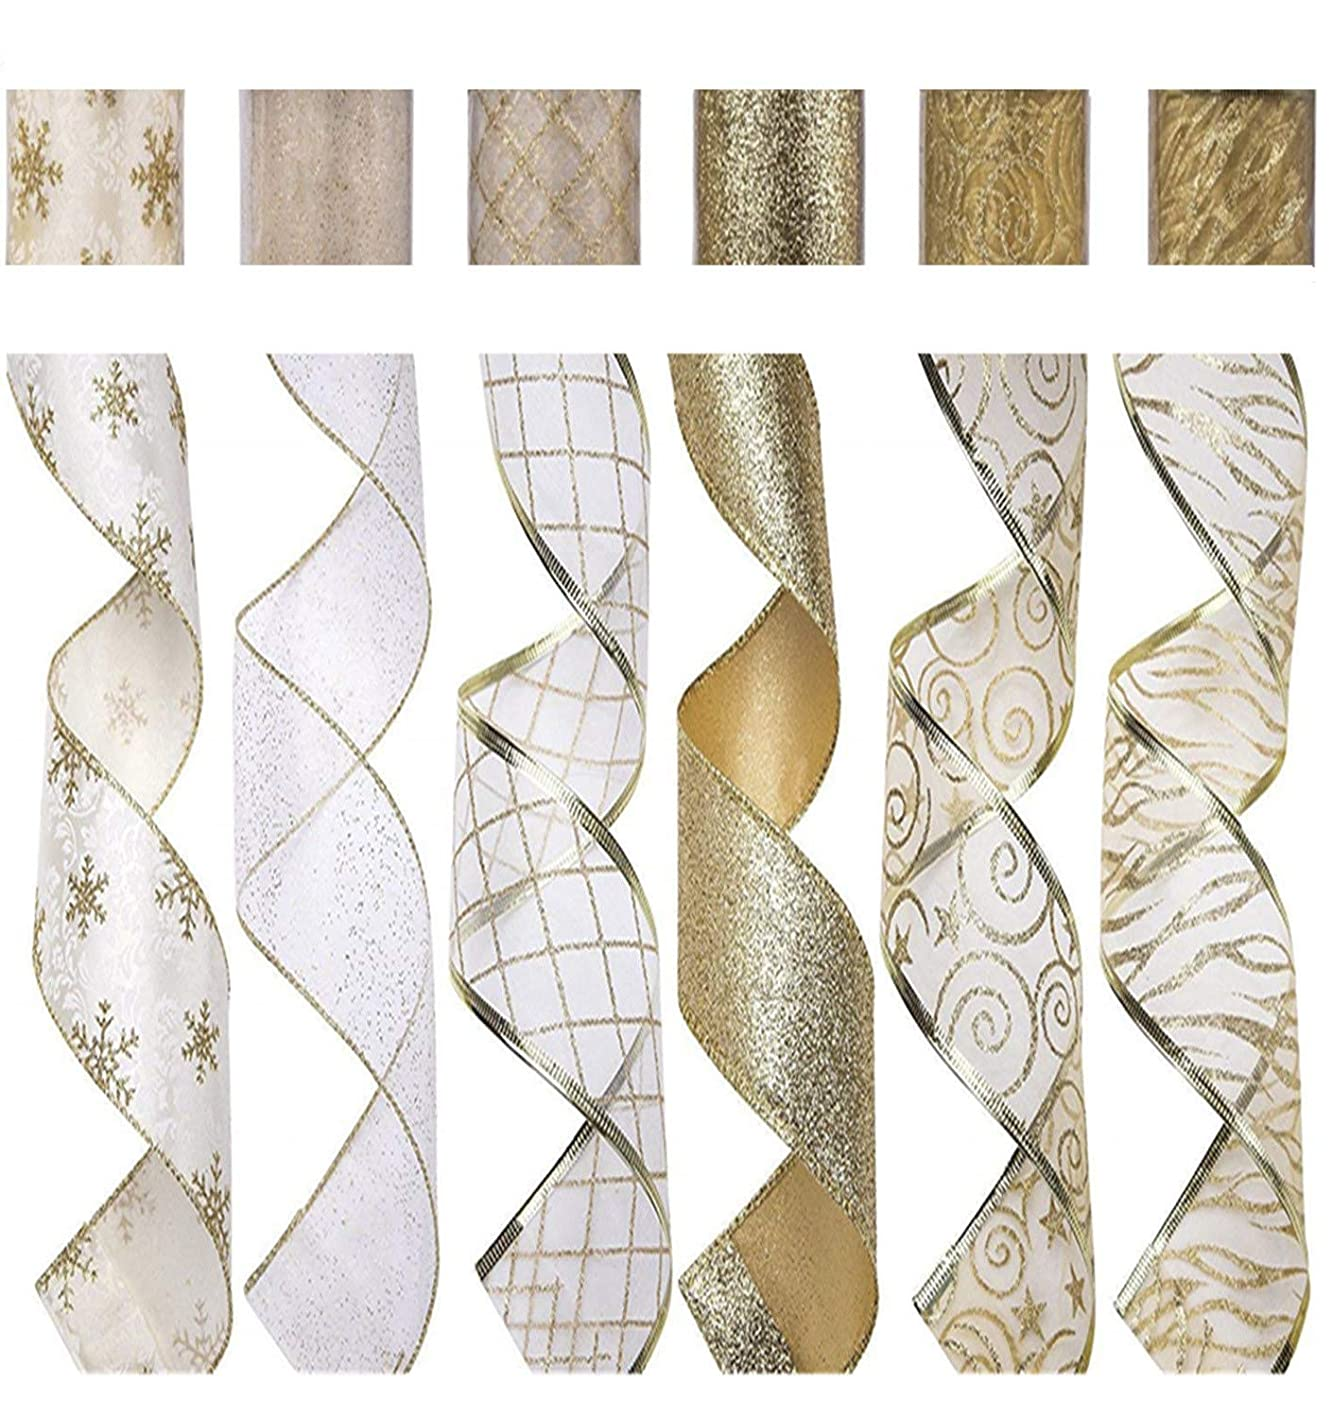 SANNO 6 Rolls Wired Decorations, Christmas Ribbon Assorted Sheer Glitter Ribbon Tulle Decorations Wired Edge Ornaments 36 Yards (2.5